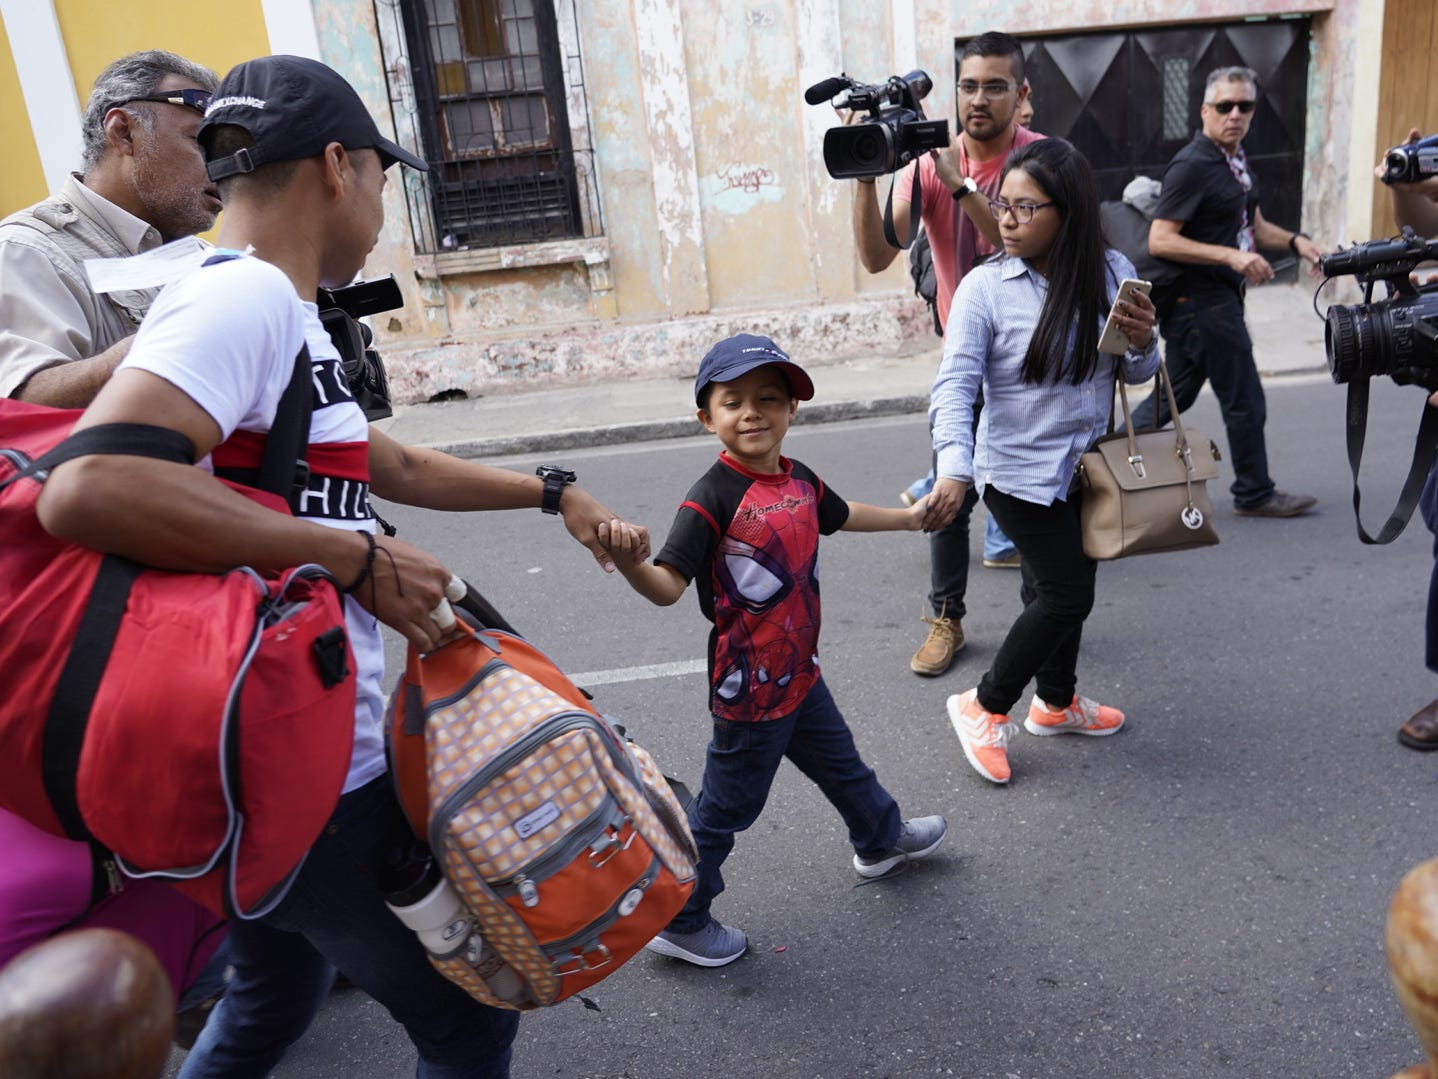 Leo Jeancarlo DeLeon on his way to be reunited with his mother in Guatemala on Aug. 7, 2018.